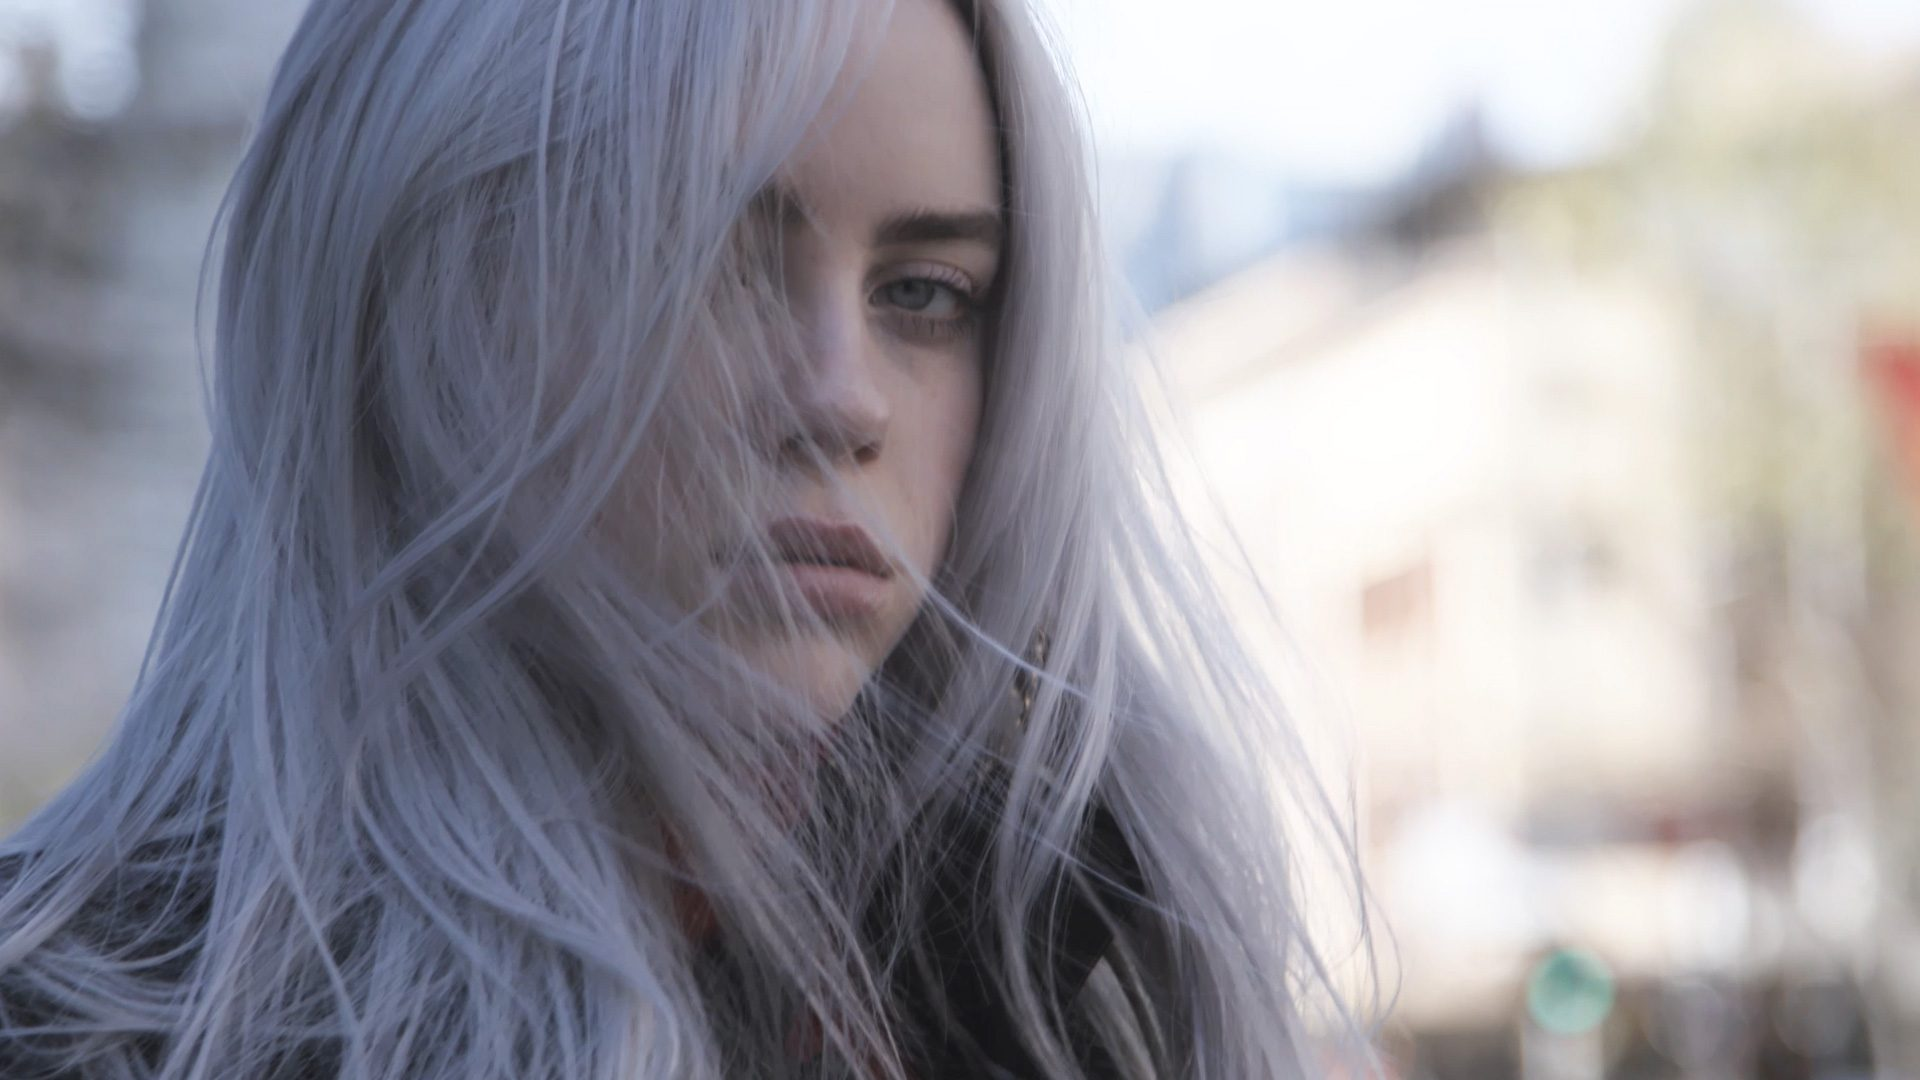 Artist Billie Eilish is only 17, but she is one of the most prolific artists out there. COURTESY OF LNWY